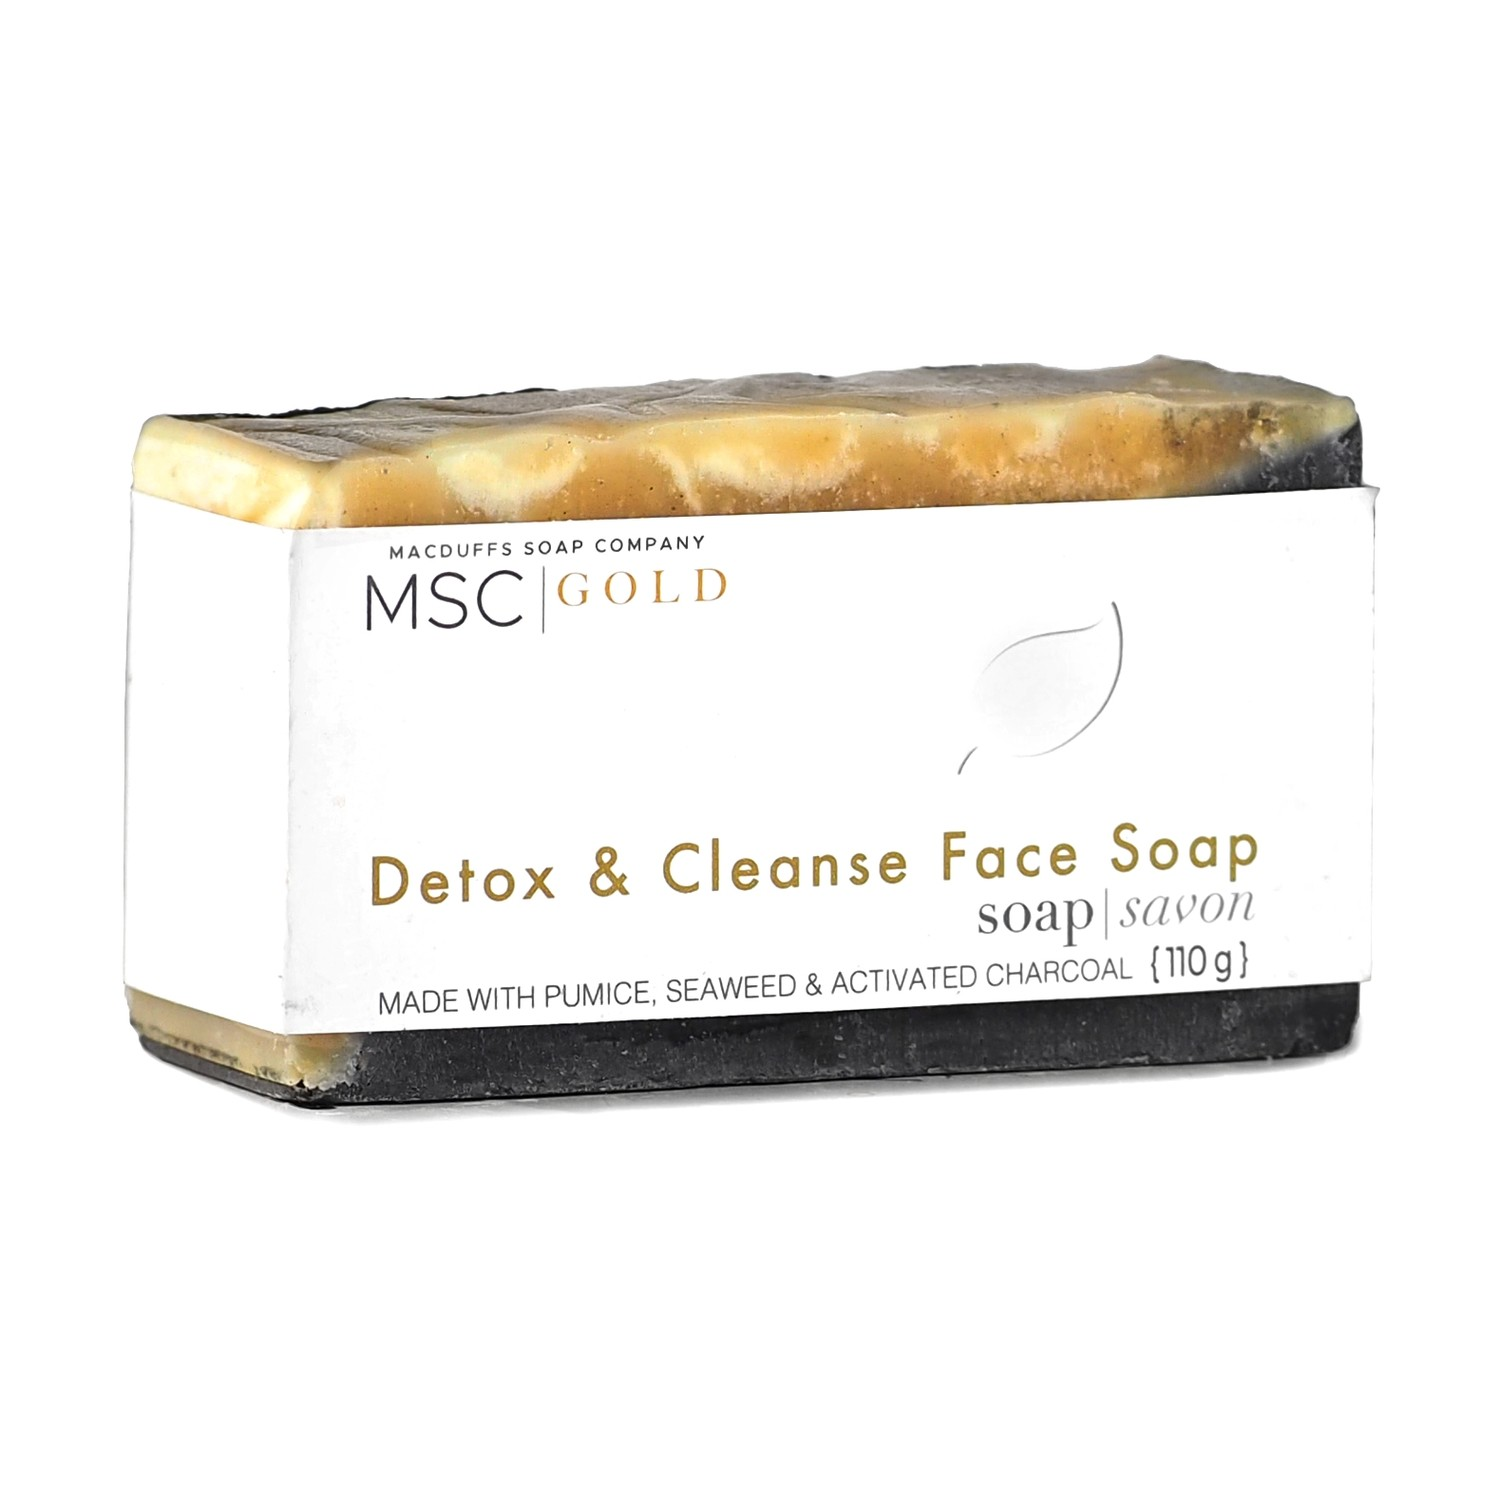 Detox and Cleanse Facial Bar